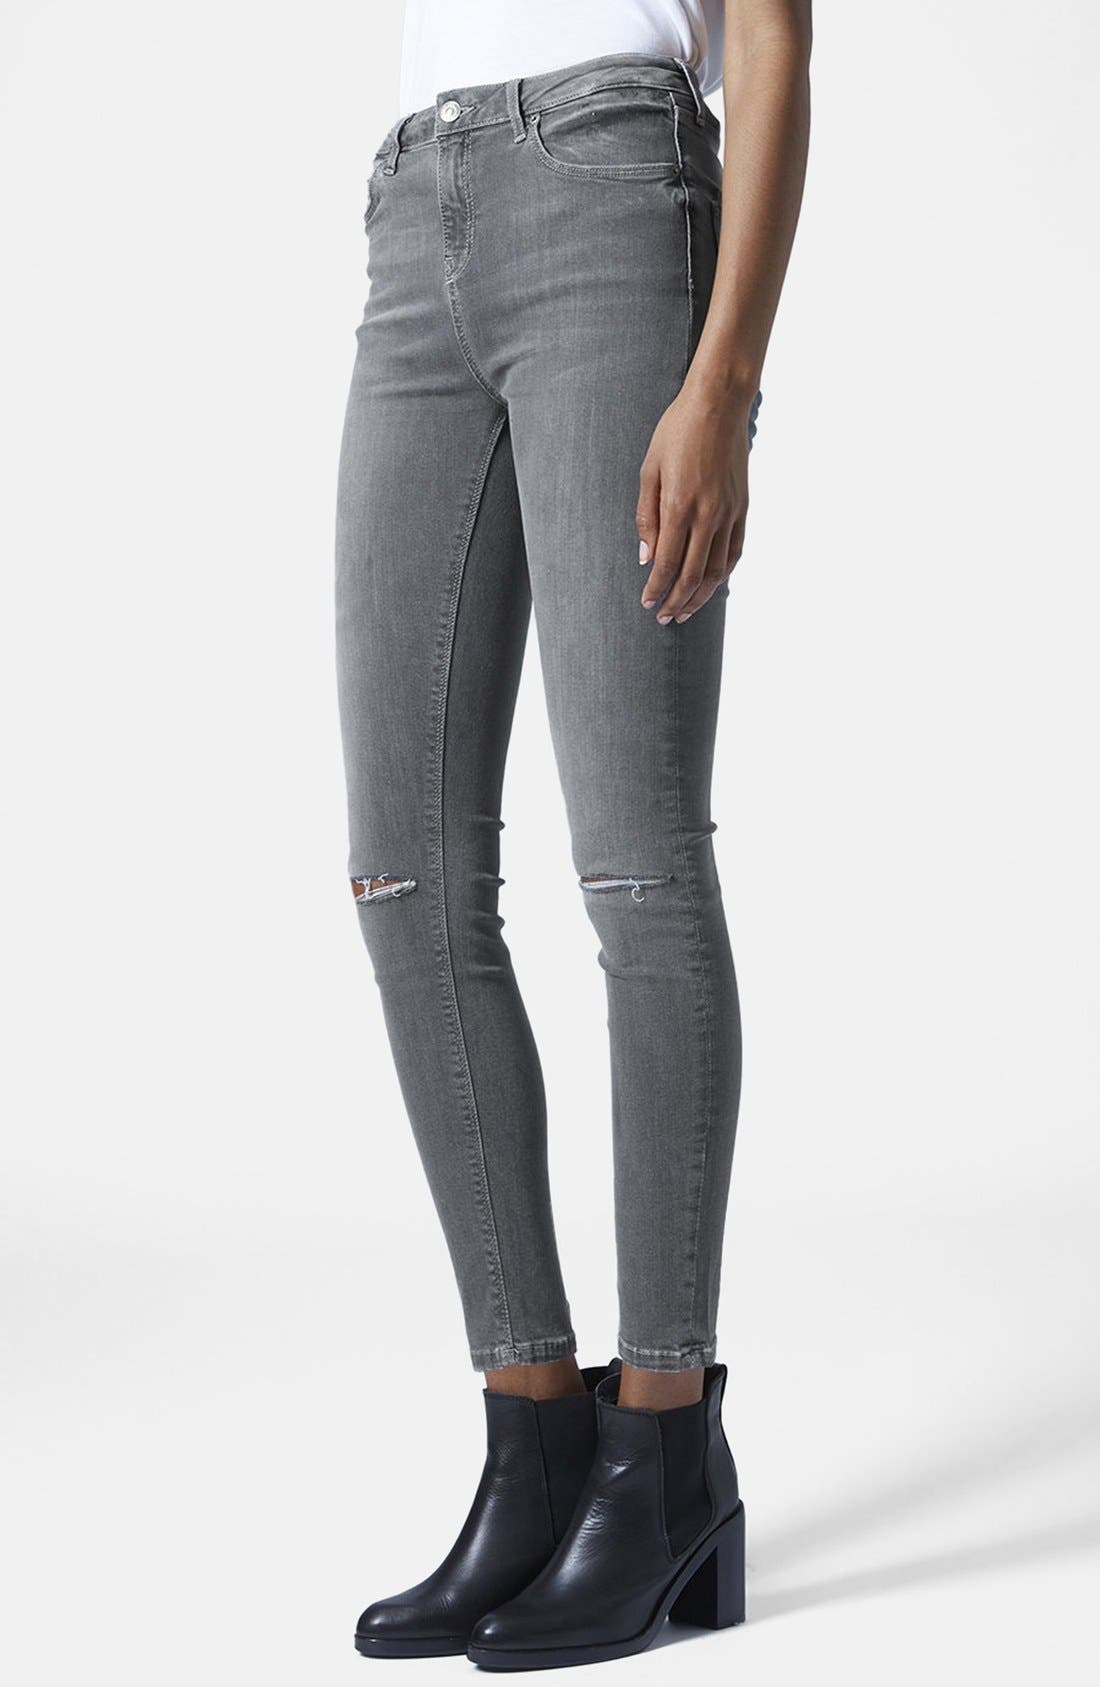 TOPSHOP, Moto 'Jamie' Ripped Skinny Jeans, Main thumbnail 1, color, 020